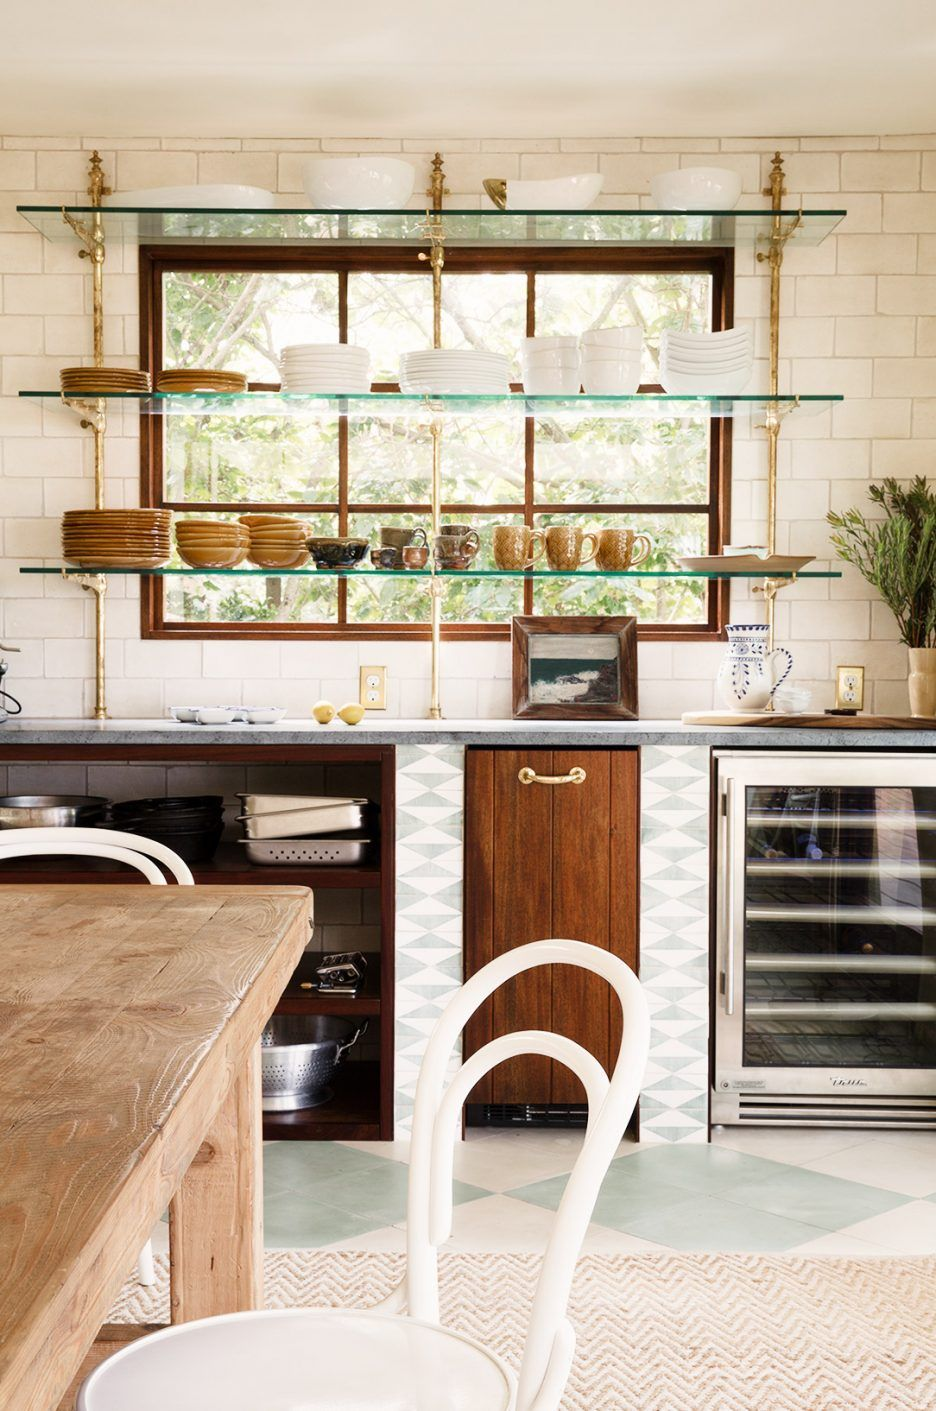 Kitchen Unfinished Kitchen Cabinets Without Doors How To Store Dishes Without Cabinets How To Organize Refrigerator Bold Kitchen Kitchen Design Kitchen Remodel